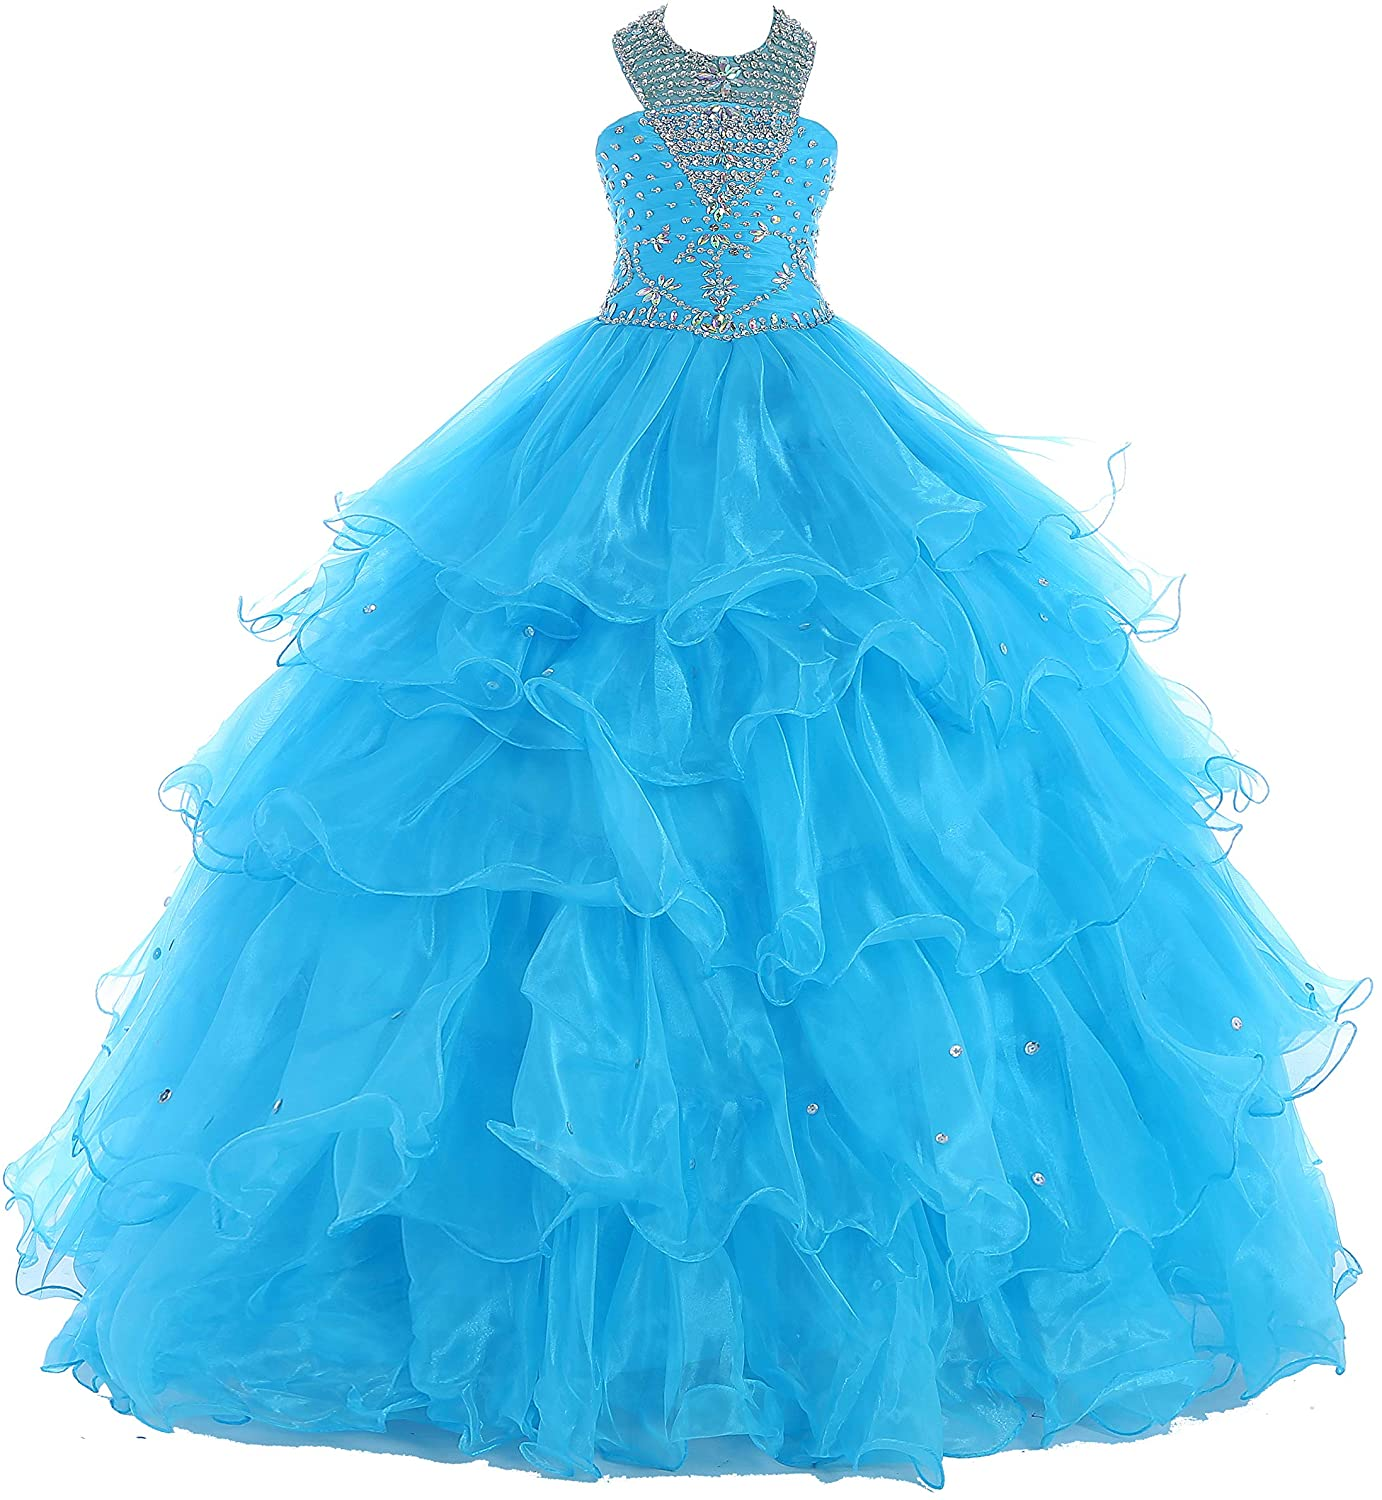 Oudy Strap Beaded Ruffled Ball Gowns 2017 Girls Long Pageant Dresses